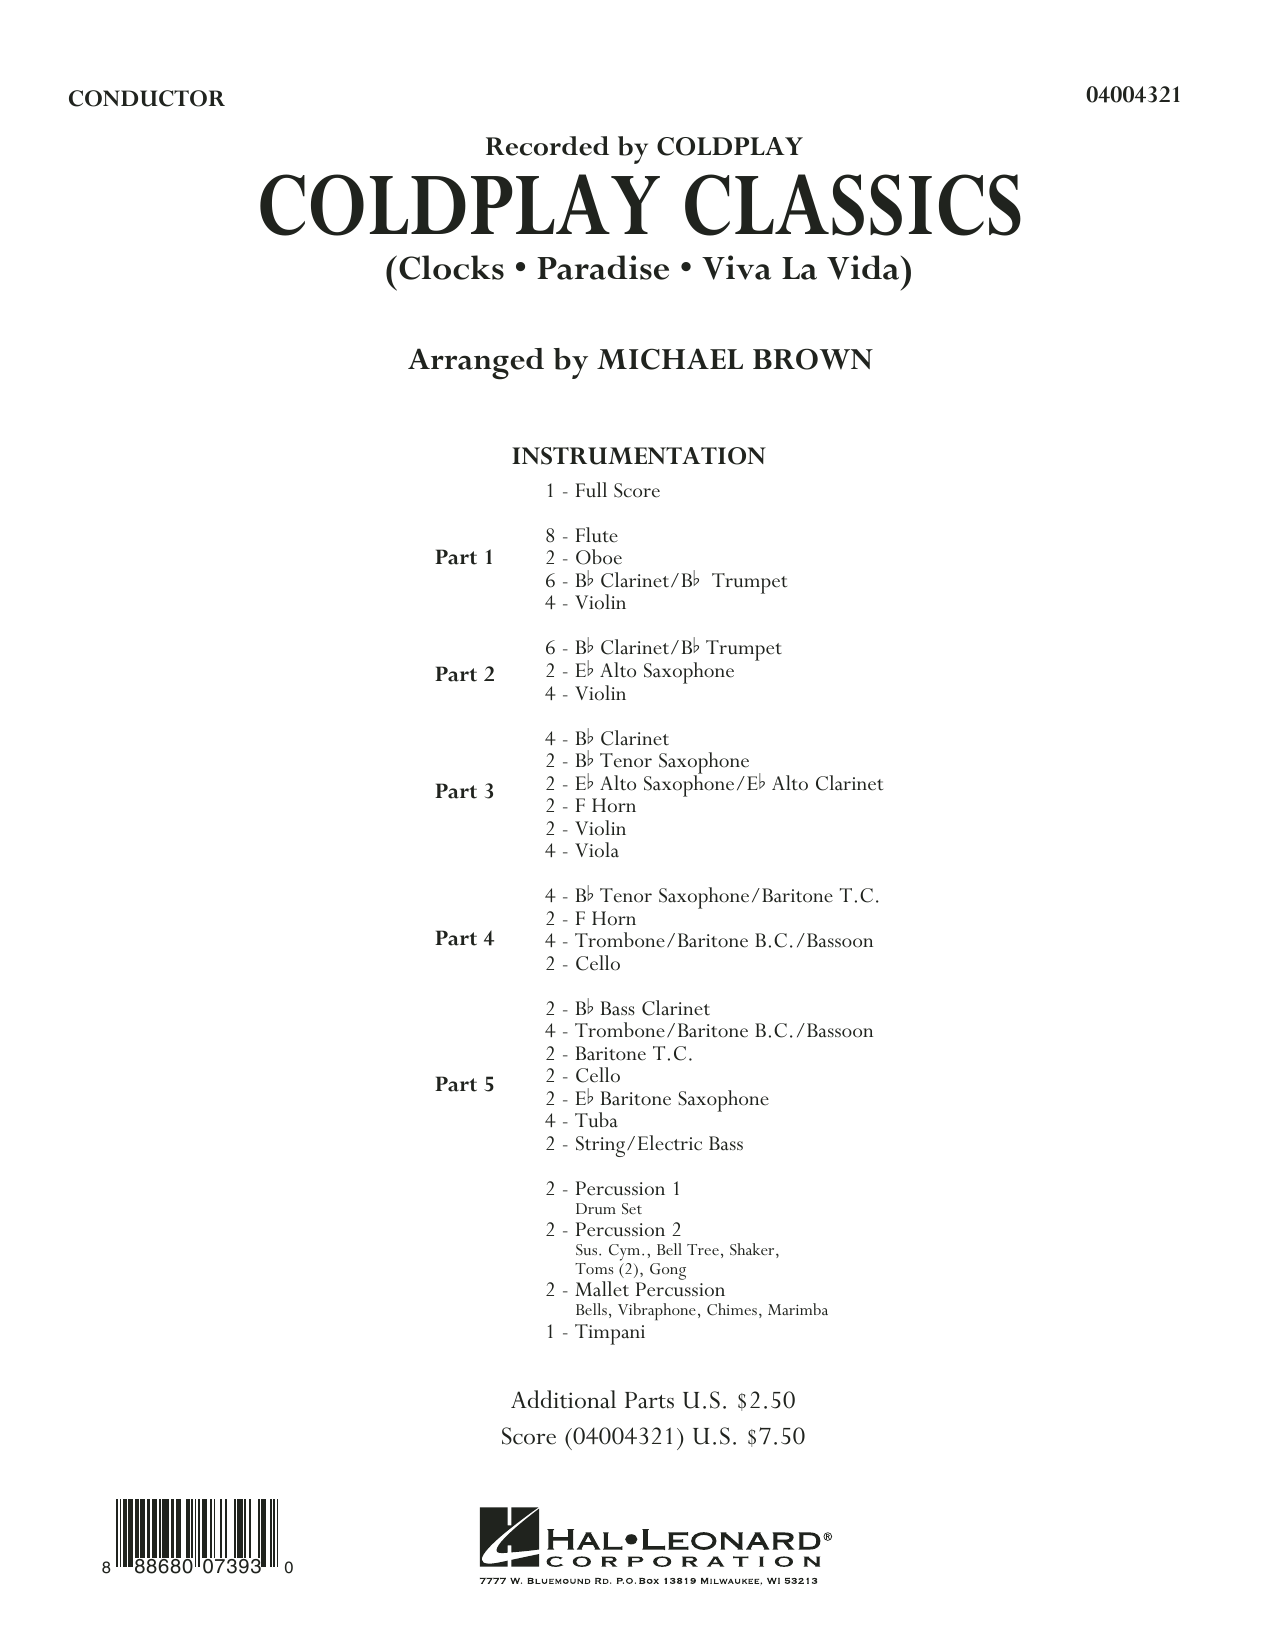 Coldplay Classics - Conductor Score (Full Score) Sheet Music